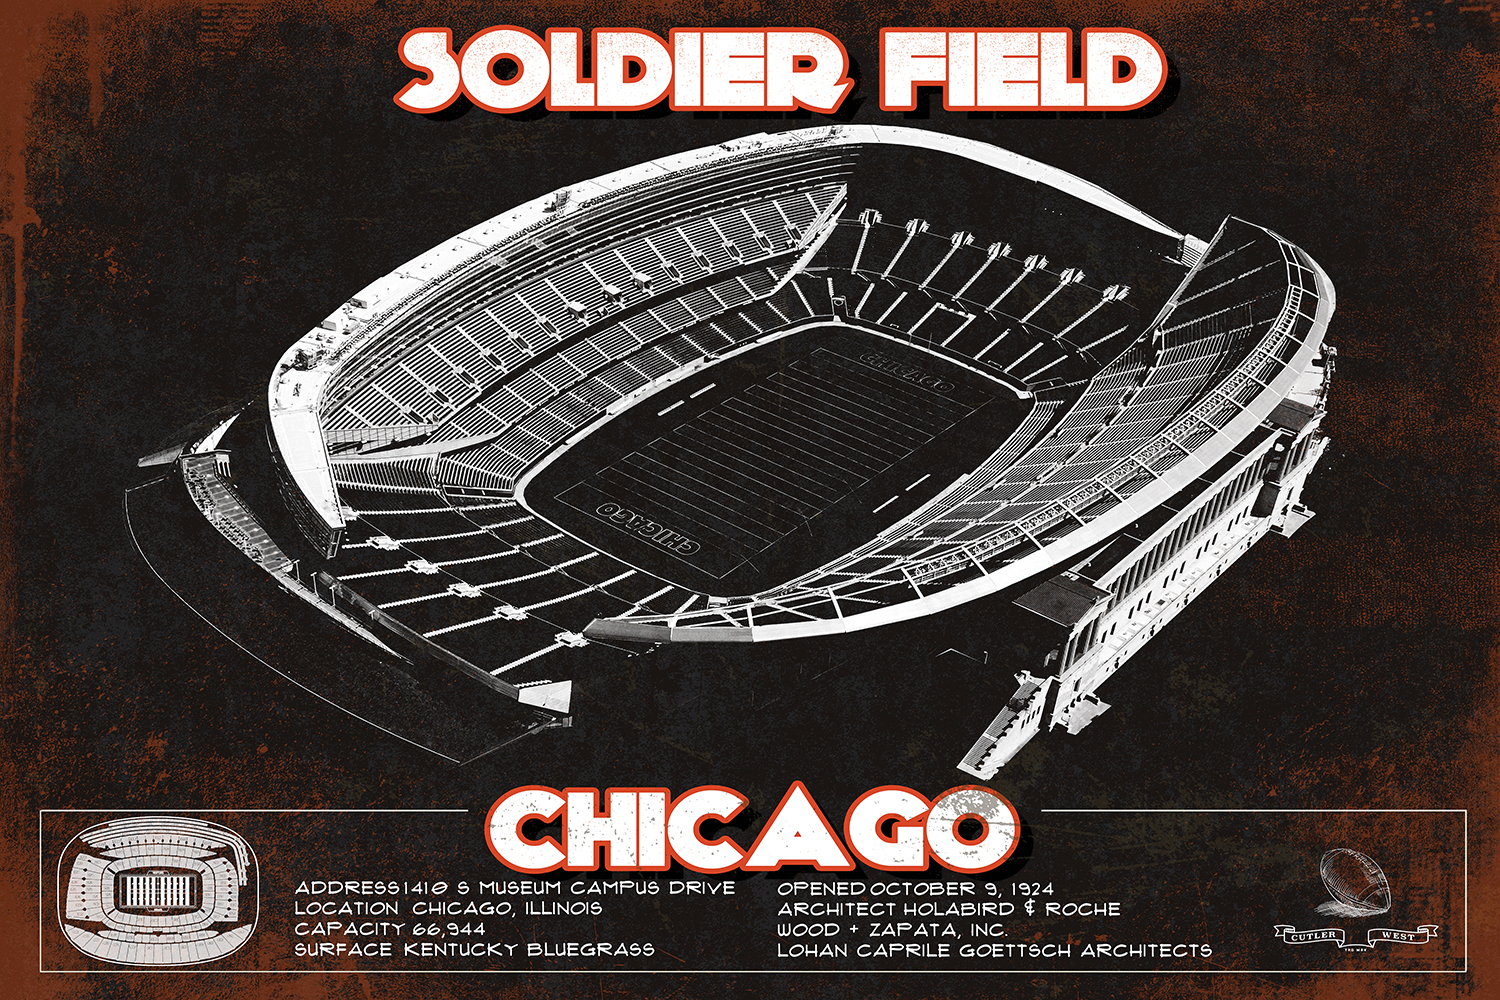 Black blueprint with reddish borders of Soldier Field stadium in Chicago with facts at the bottom